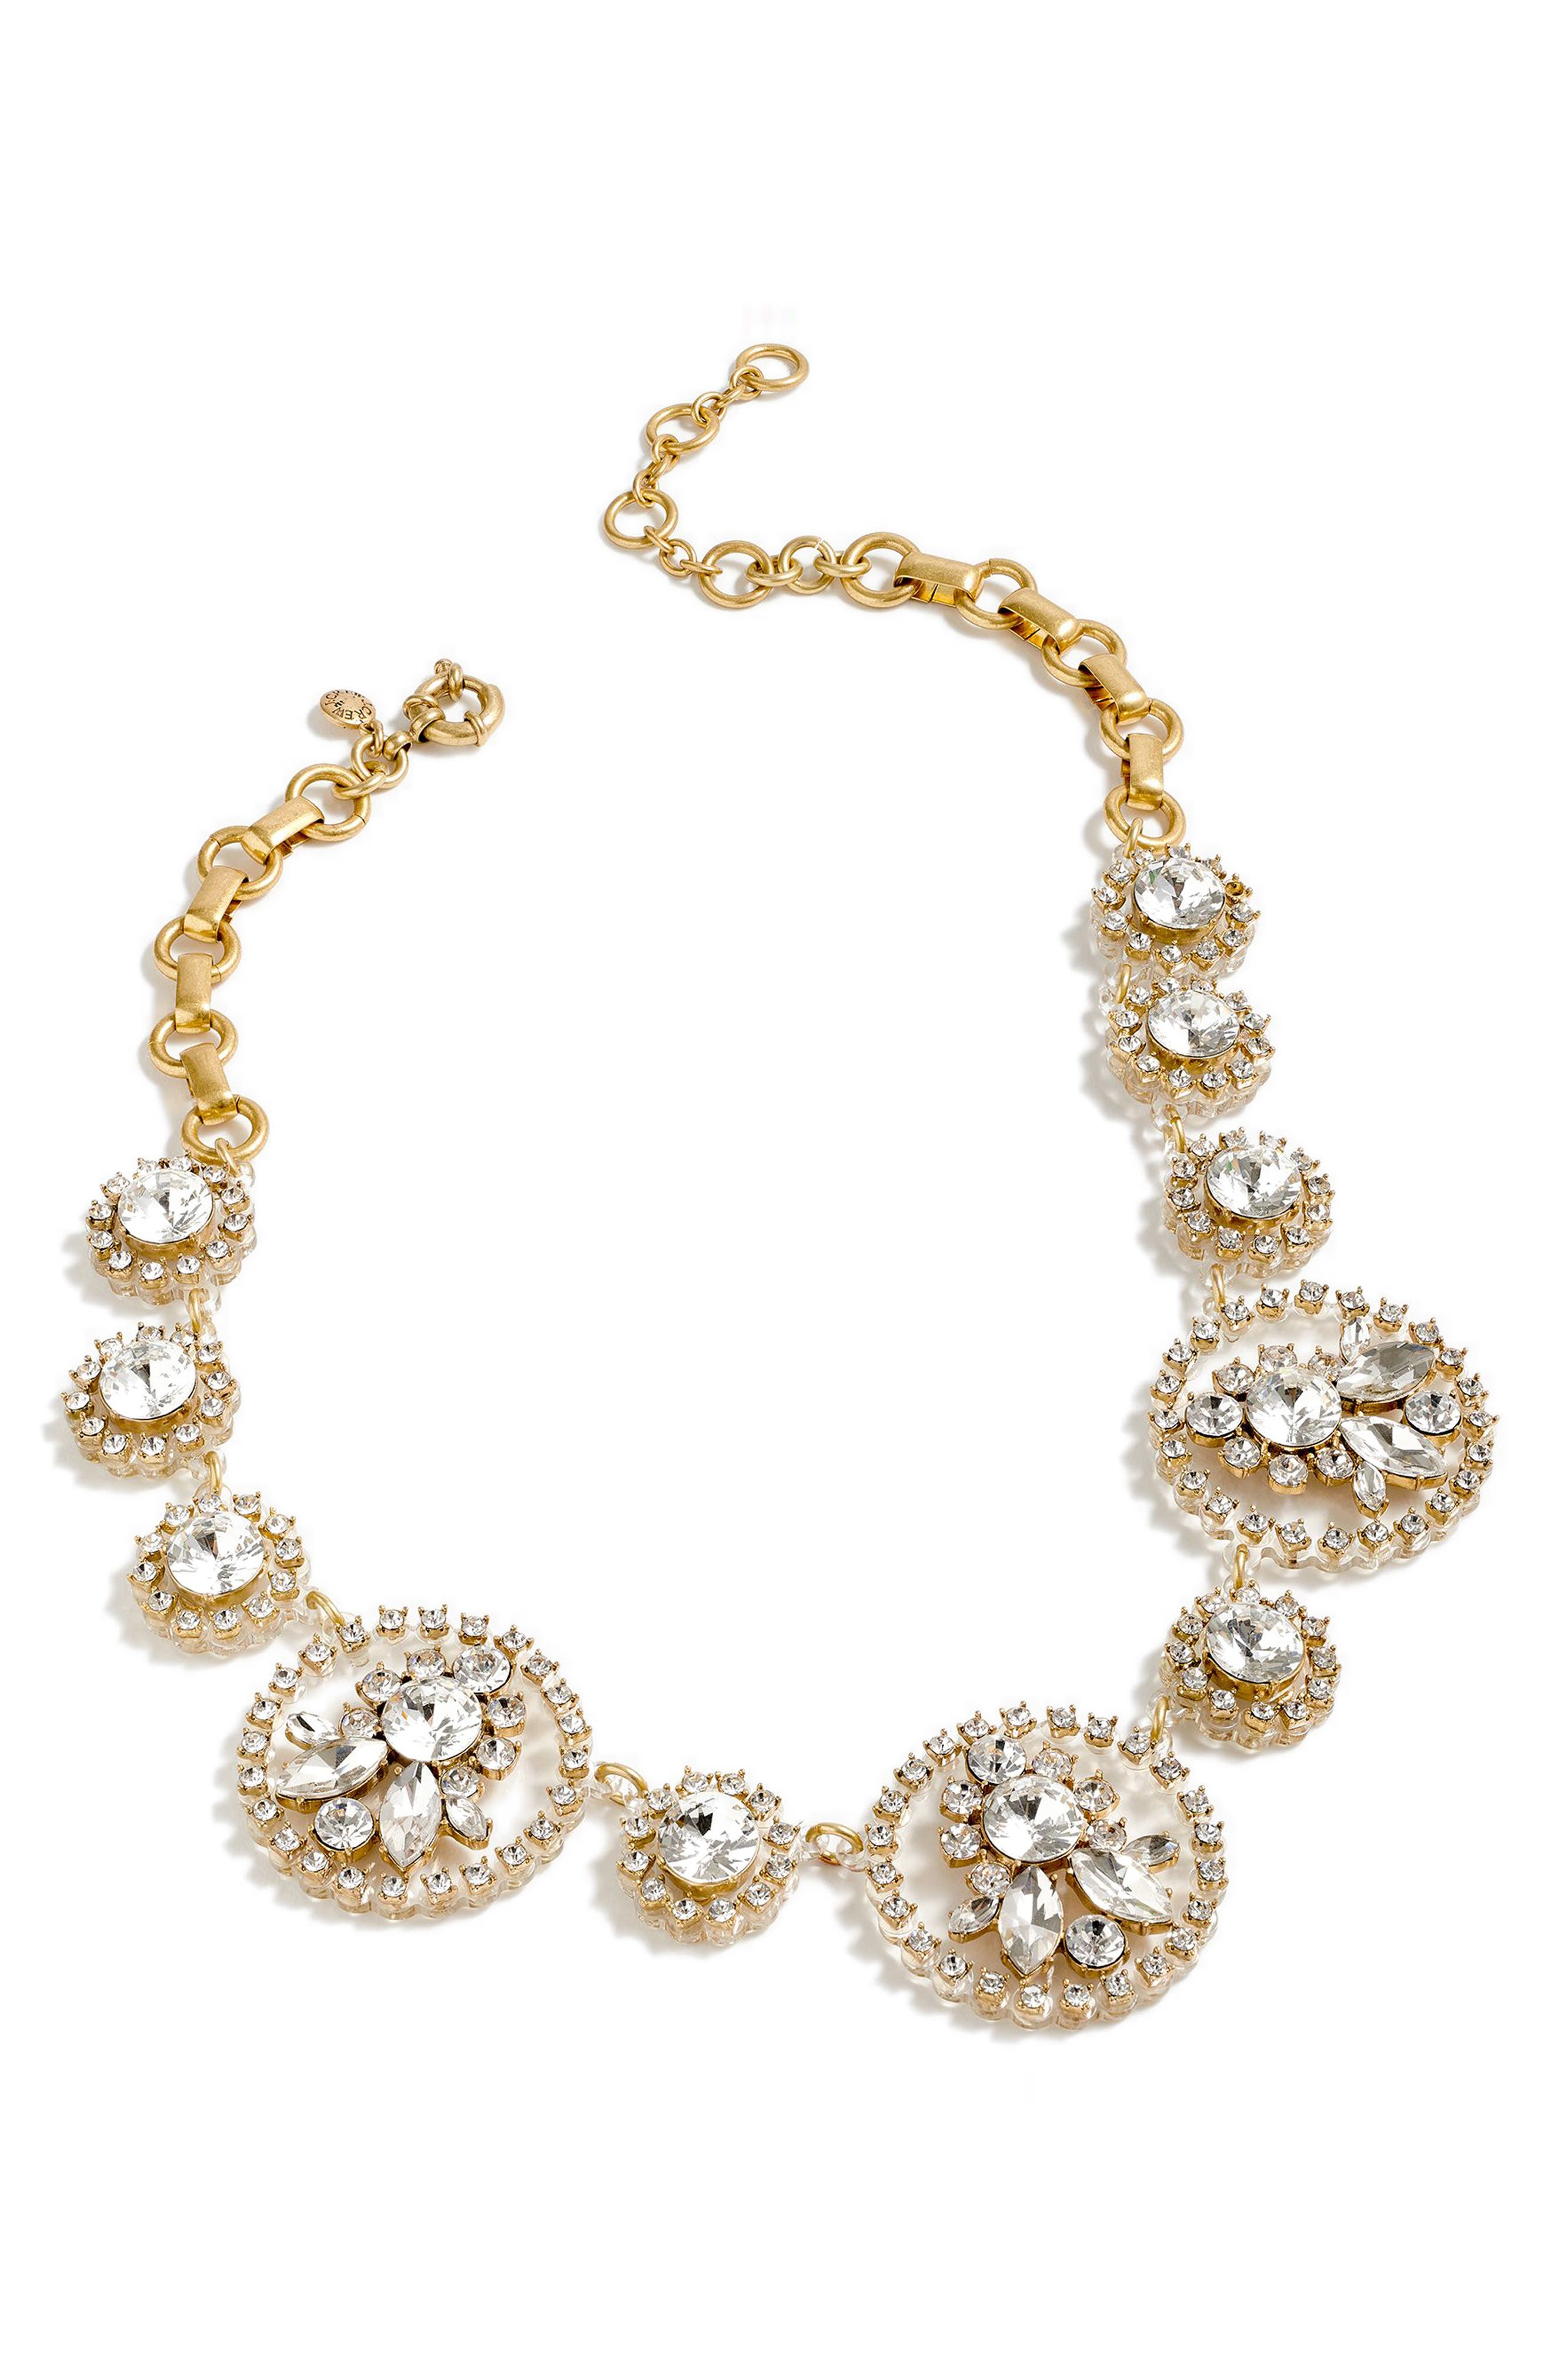 Crystal Statement Necklace,                             Main thumbnail 1, color,                             040